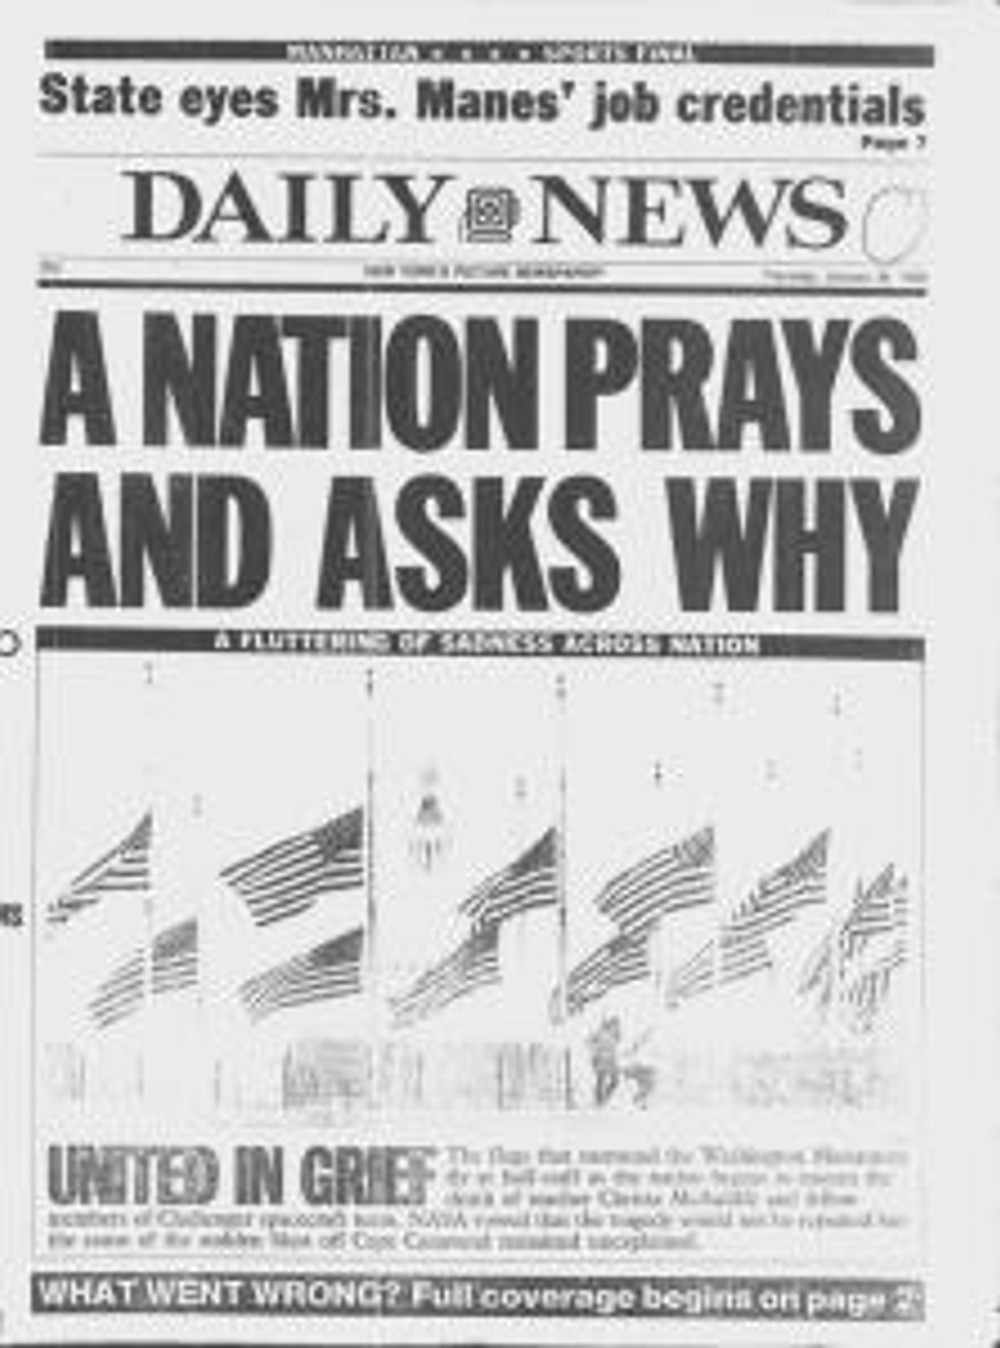 """""""A Nation Prays And Asks Why"""" was the headline on the front page of The Daily News on January 30, 1986 regarding the explosion of the space shuttle Challenger."""